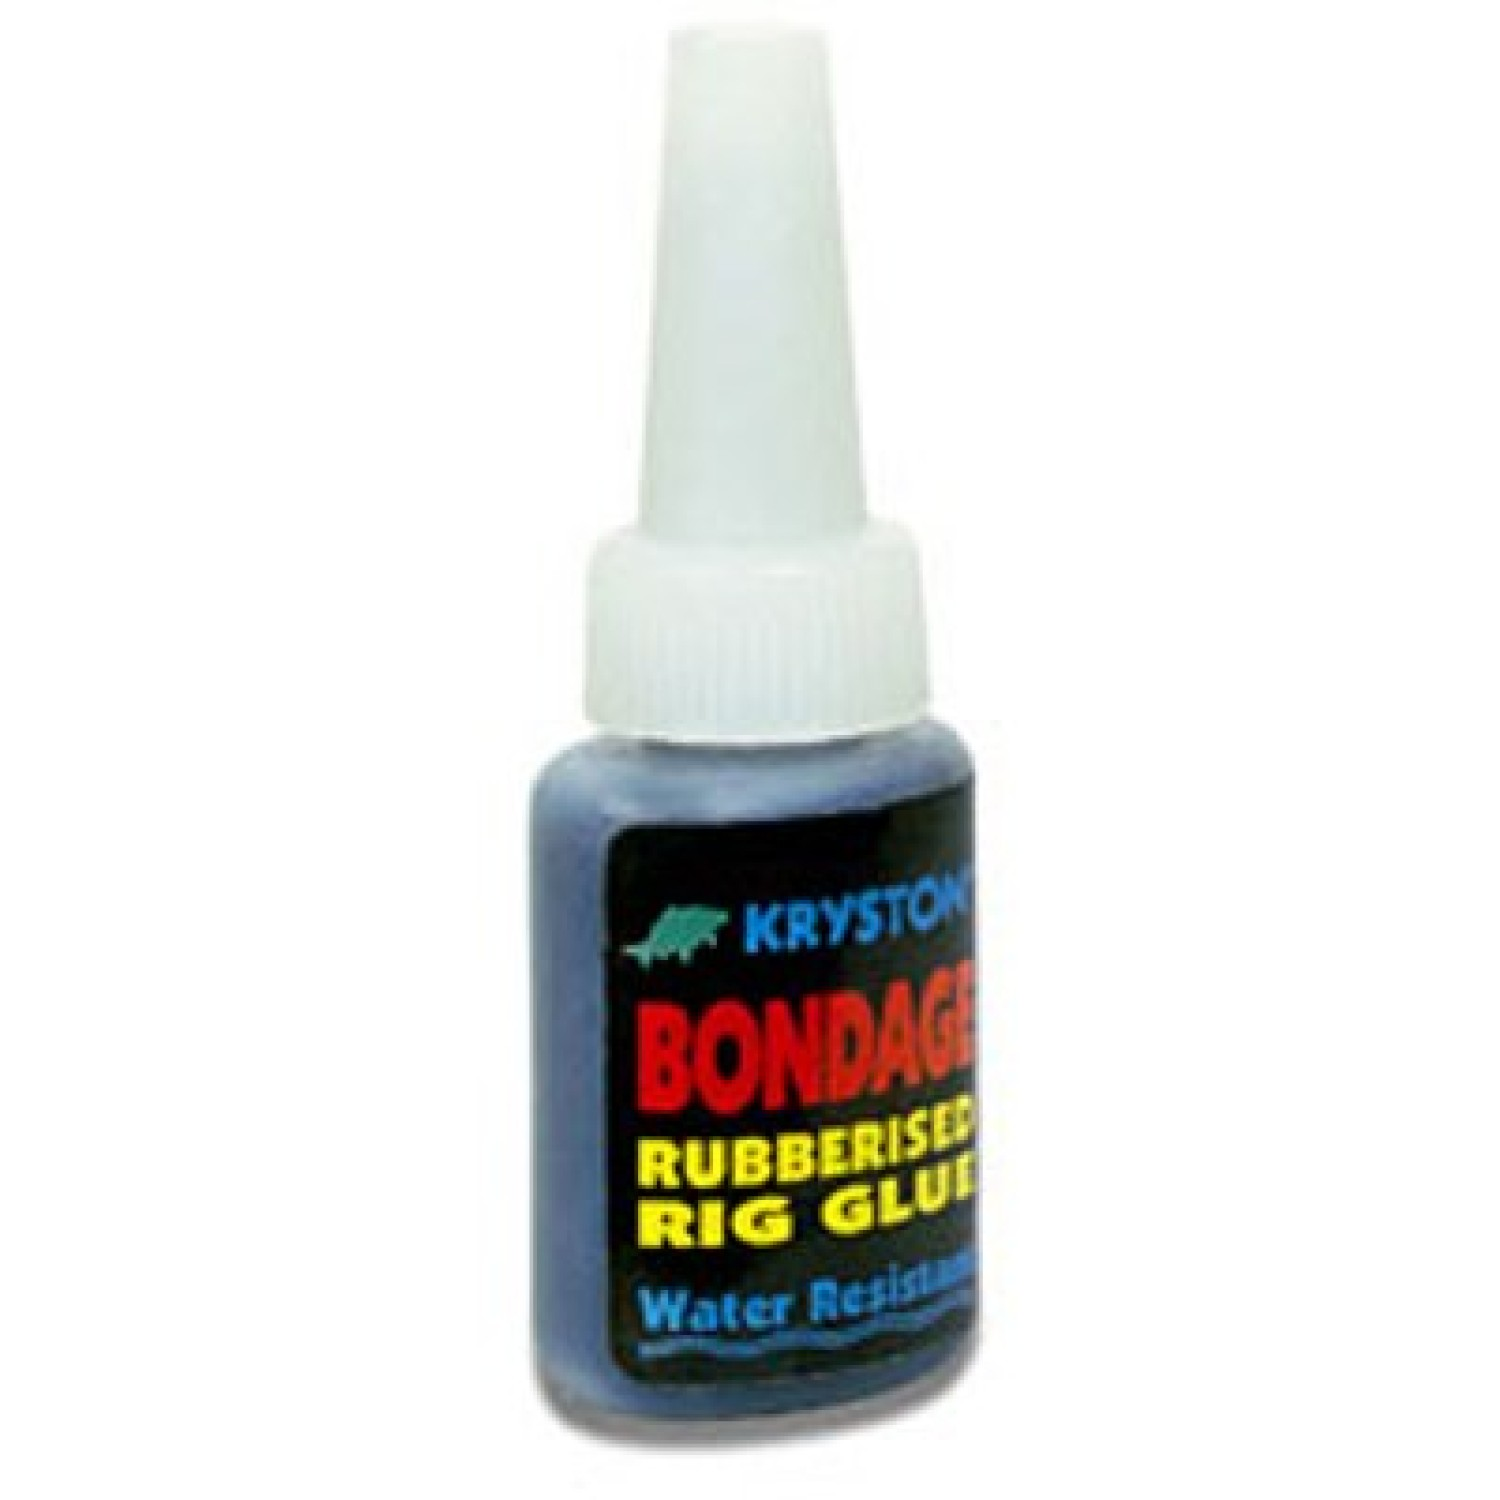 Kryston - Rubberised Rig Glue - Bondage